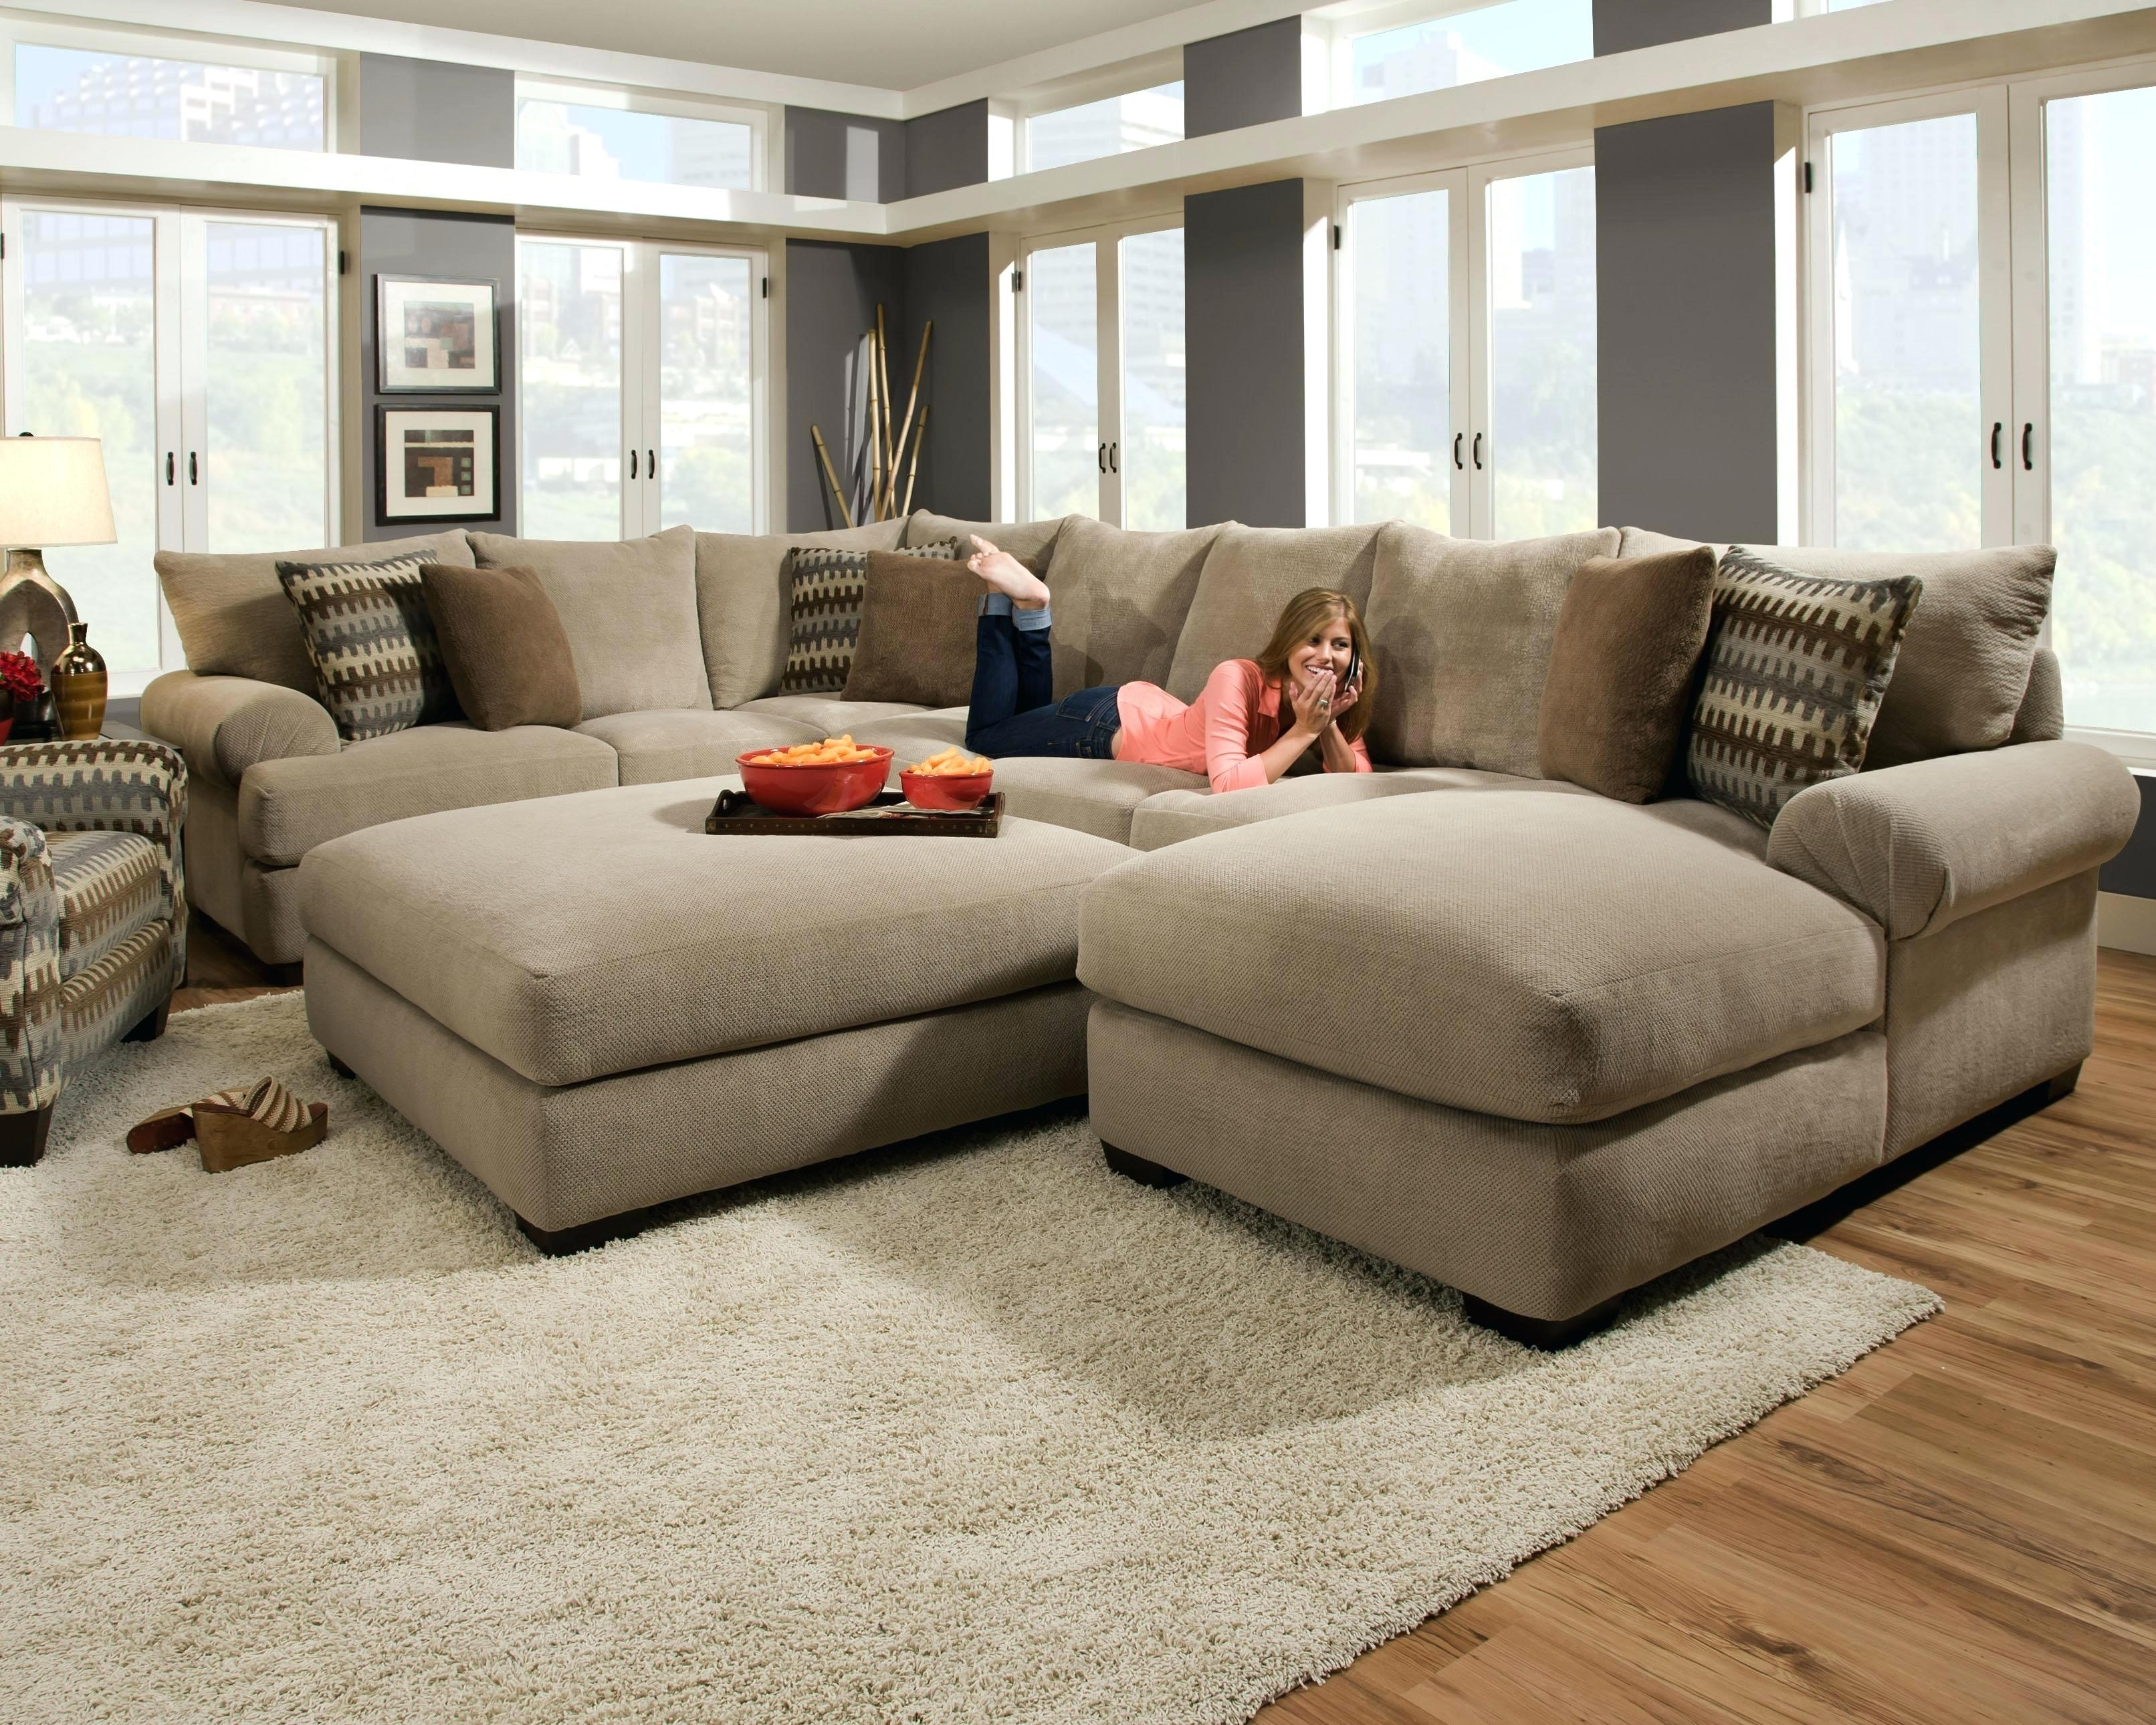 Deep Cushion Couch Sectional Sofas Leather Sofa With Deep Cushion Sofas (Image 5 of 10)